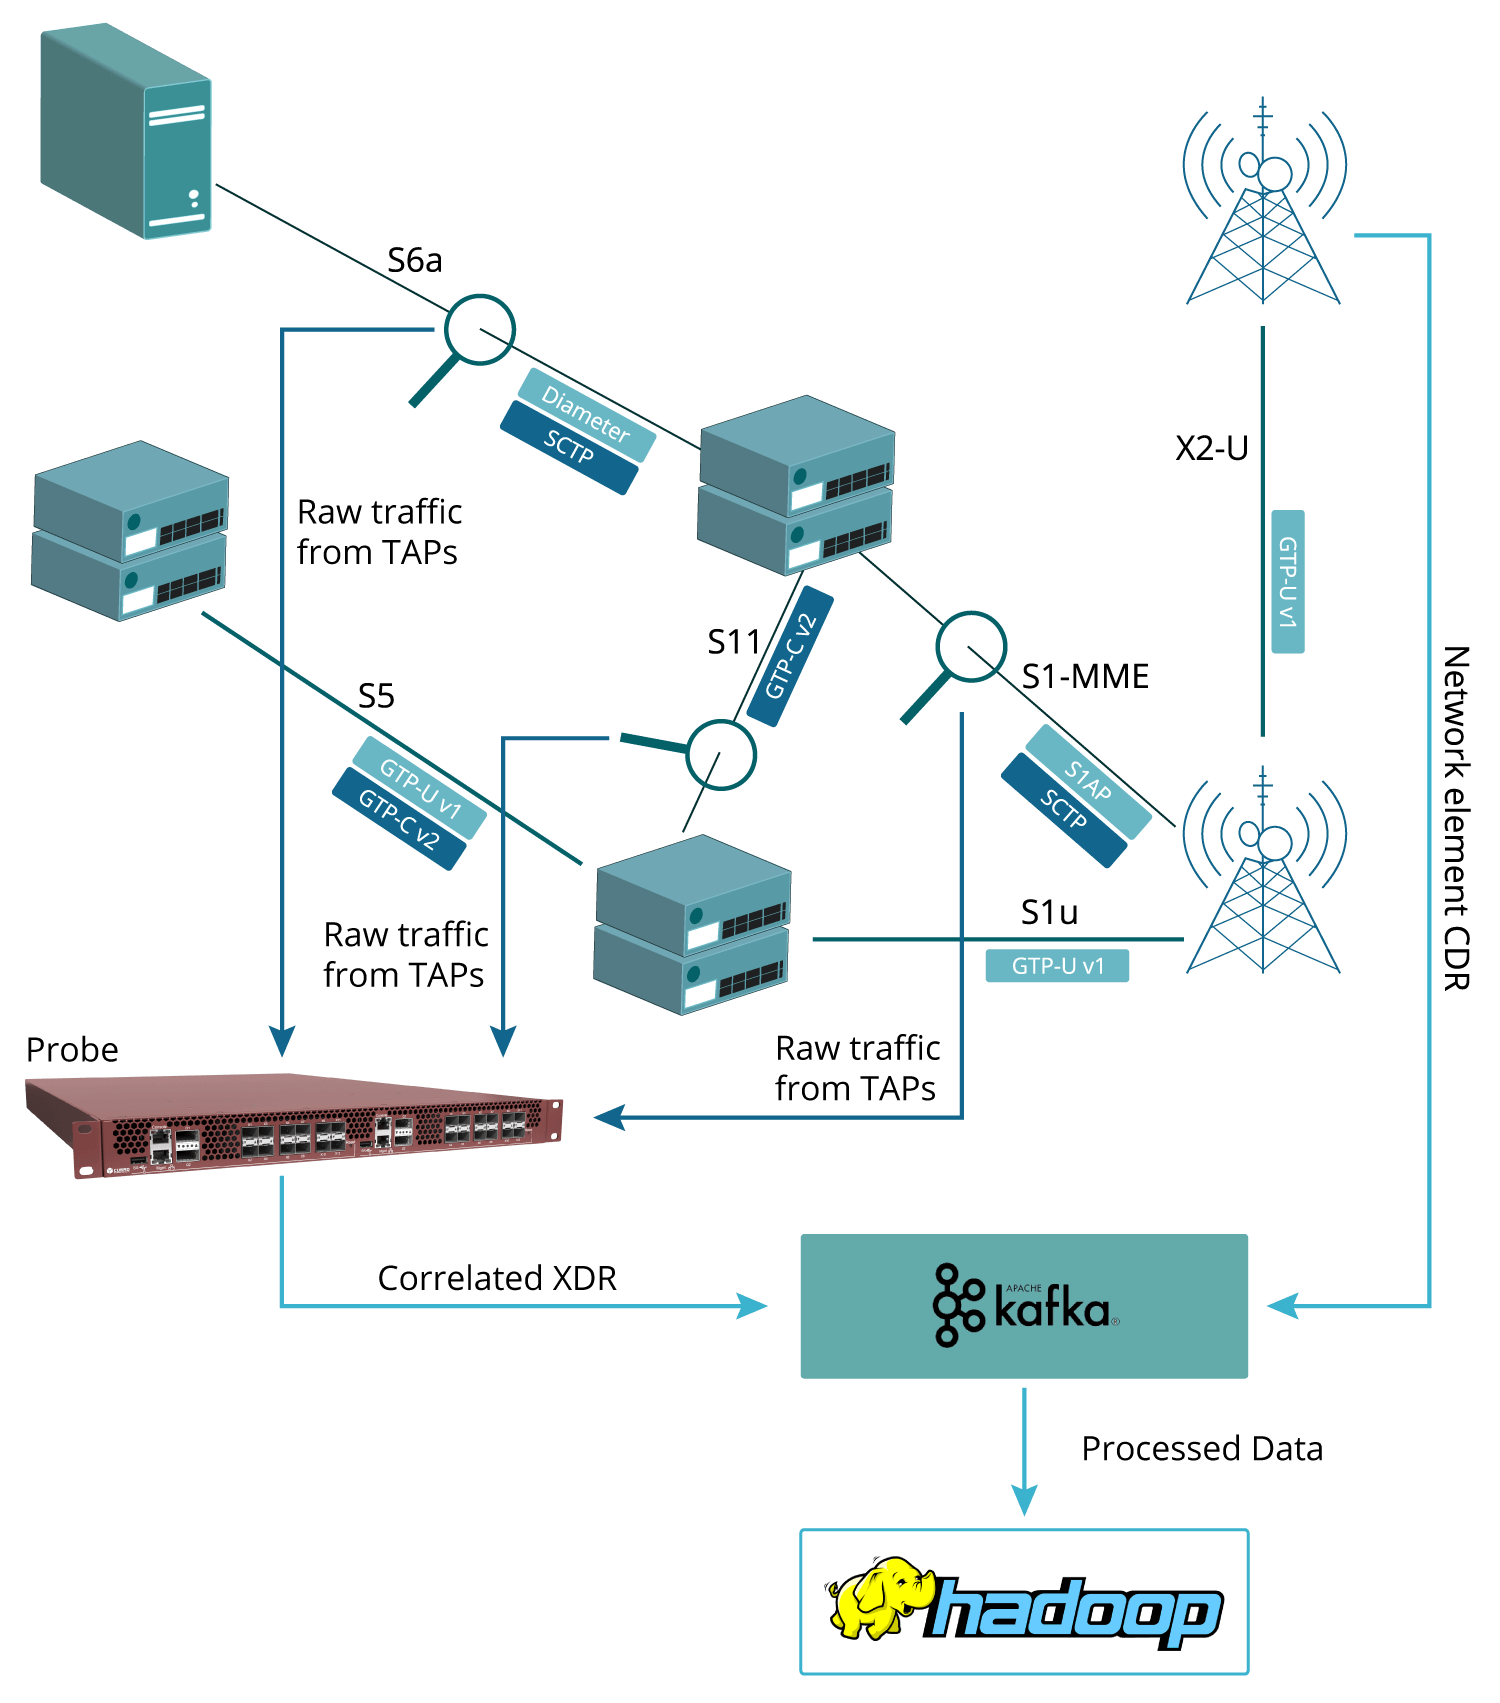 graphic for solution for DATA ENRICHMENT FOR GEOLOCATION with Cubro Probe